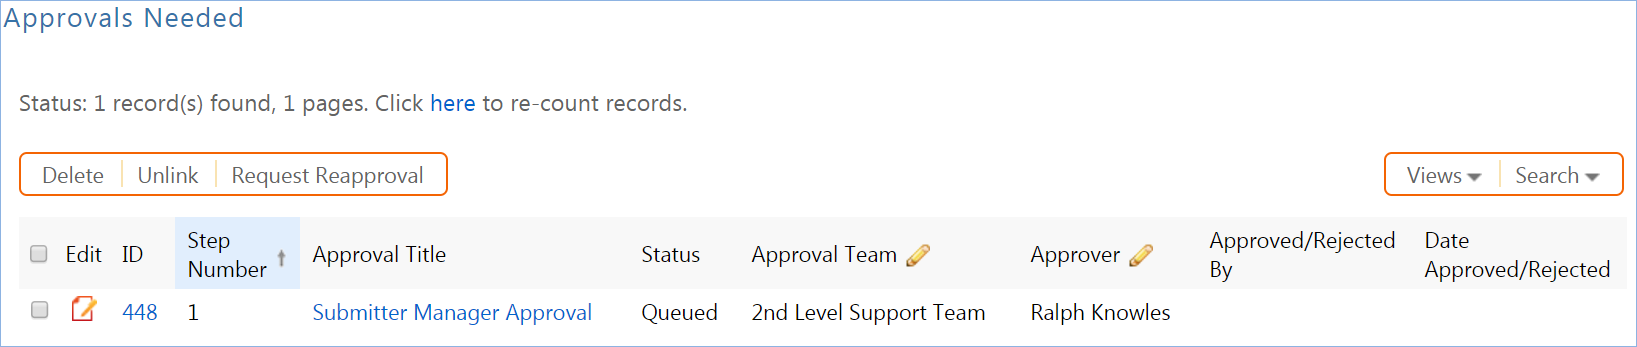 Shows the Approvals Needed related table with one workflow-generated approval record.